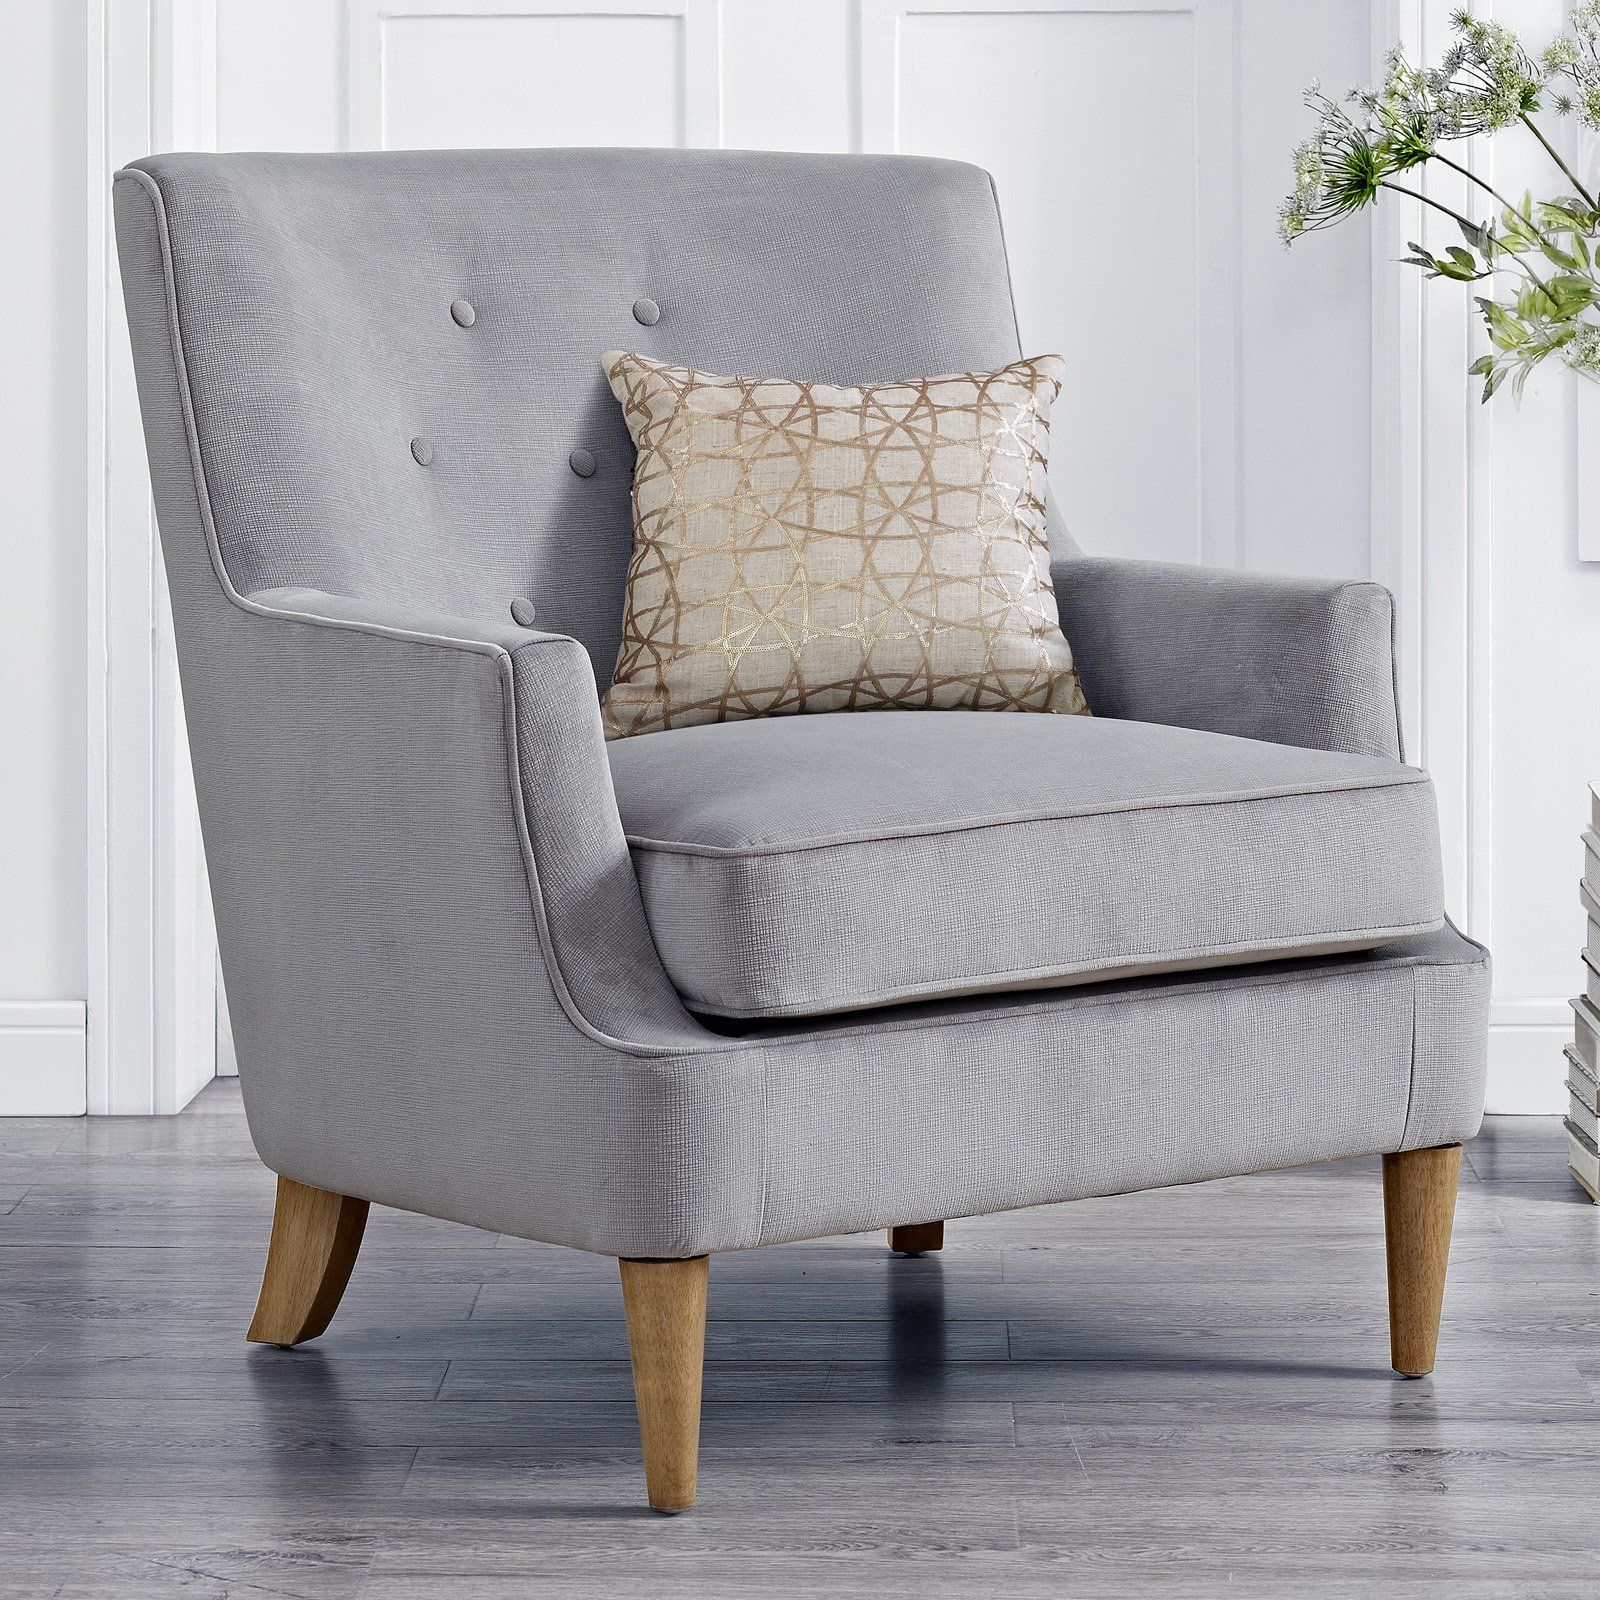 Super Mainstays Mid Century Tufted Accent Chair Products In 2019 Cjindustries Chair Design For Home Cjindustriesco